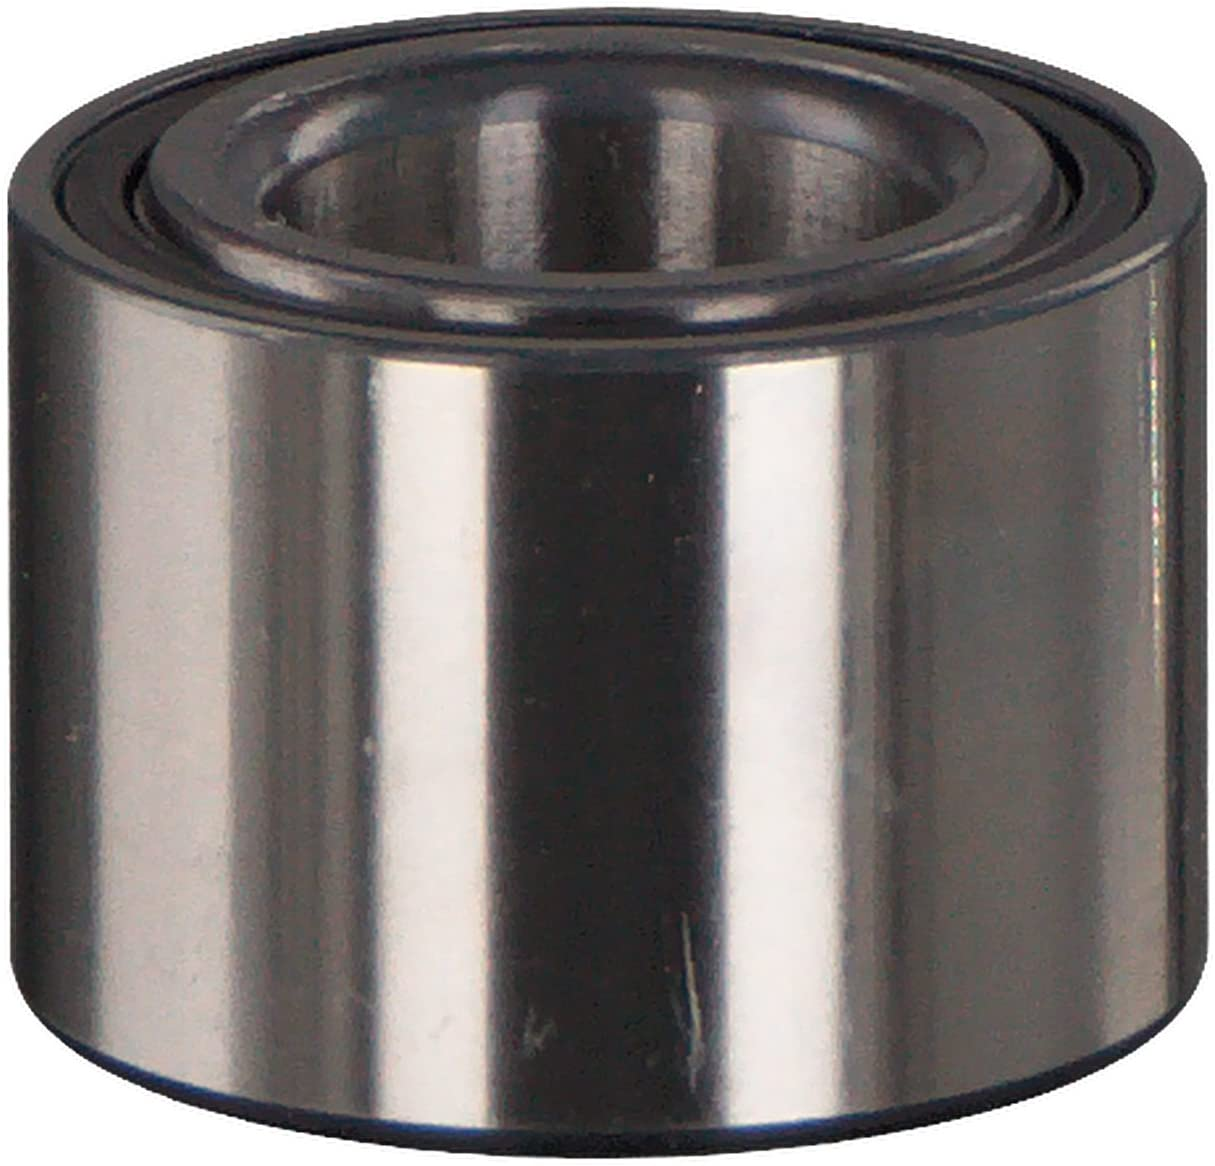 pack of one febi bilstein 19183 Wheel Bearing Kit with axle nut and circlip